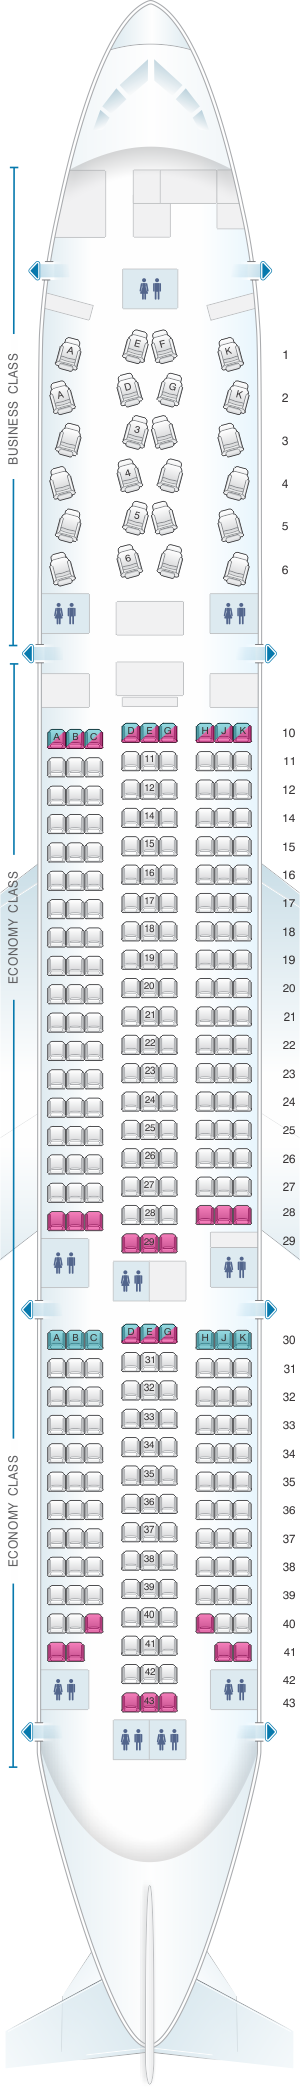 Seat map for Asiana Airlines Boeing B777 200ER 301PAX